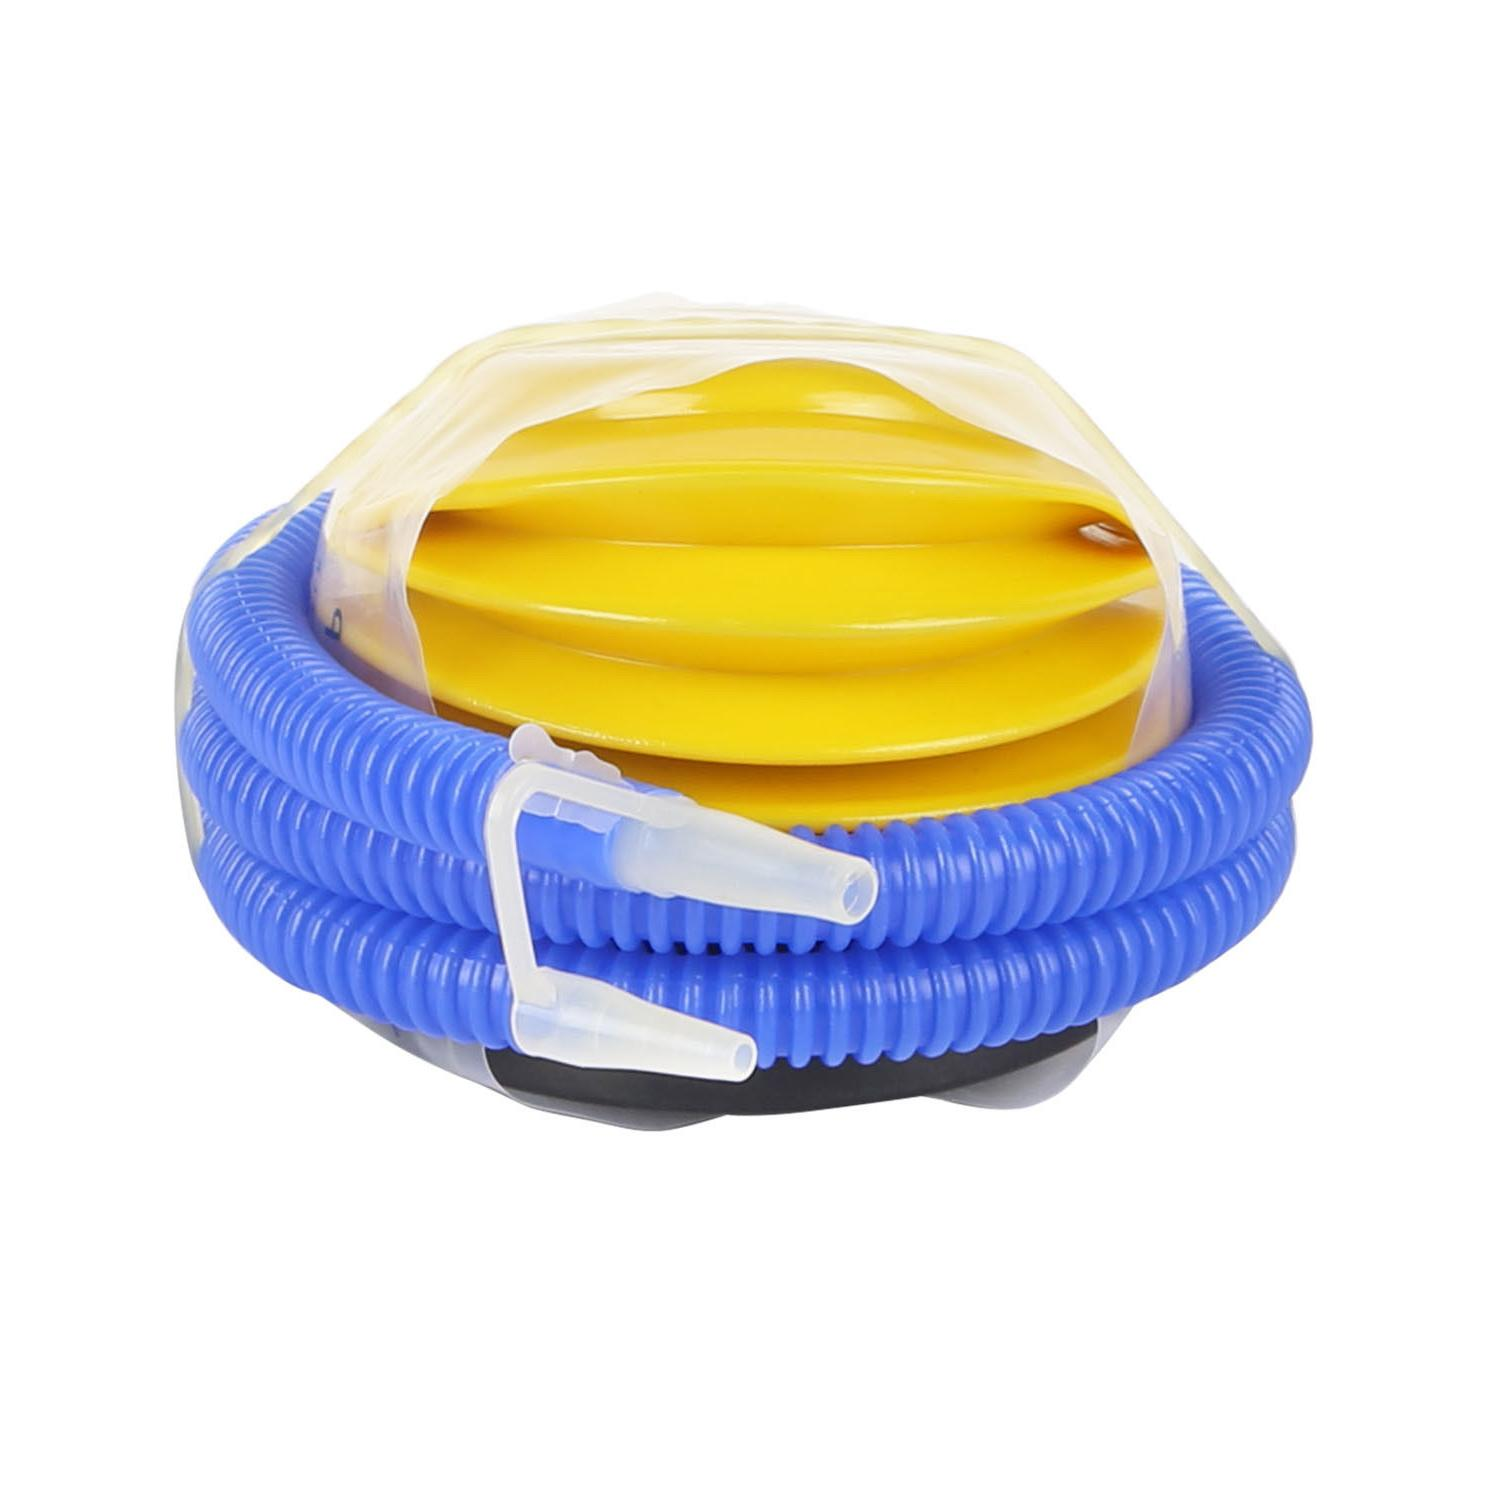 Foot Operated Air Toy Balloon Inflator Ball